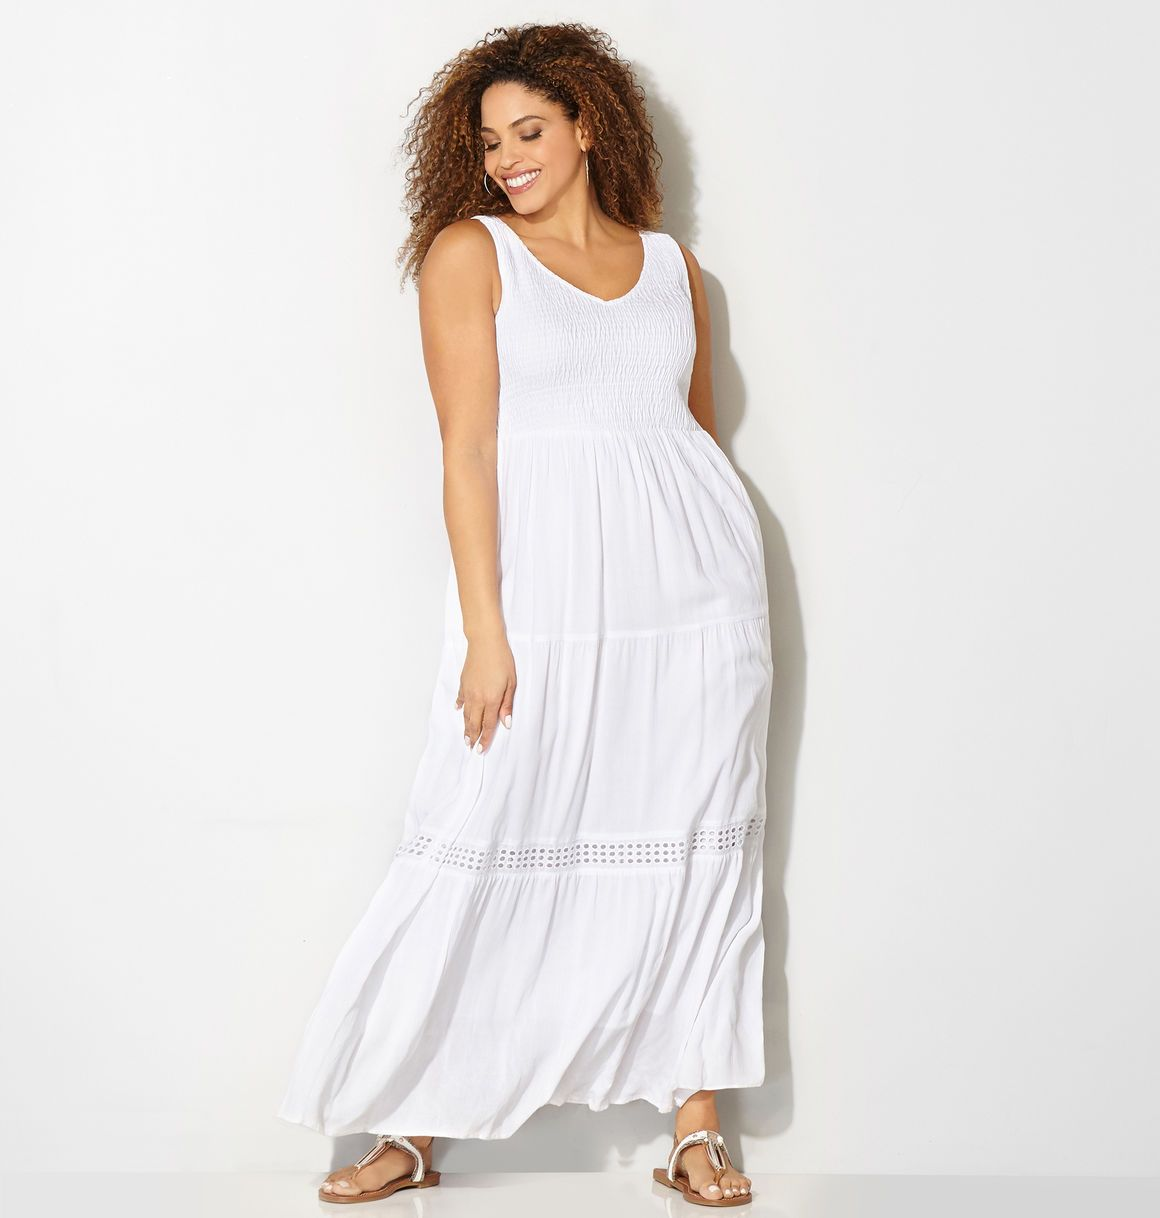 Find Romantic New Plus Size Dresses For Summer Barbeques Weddings